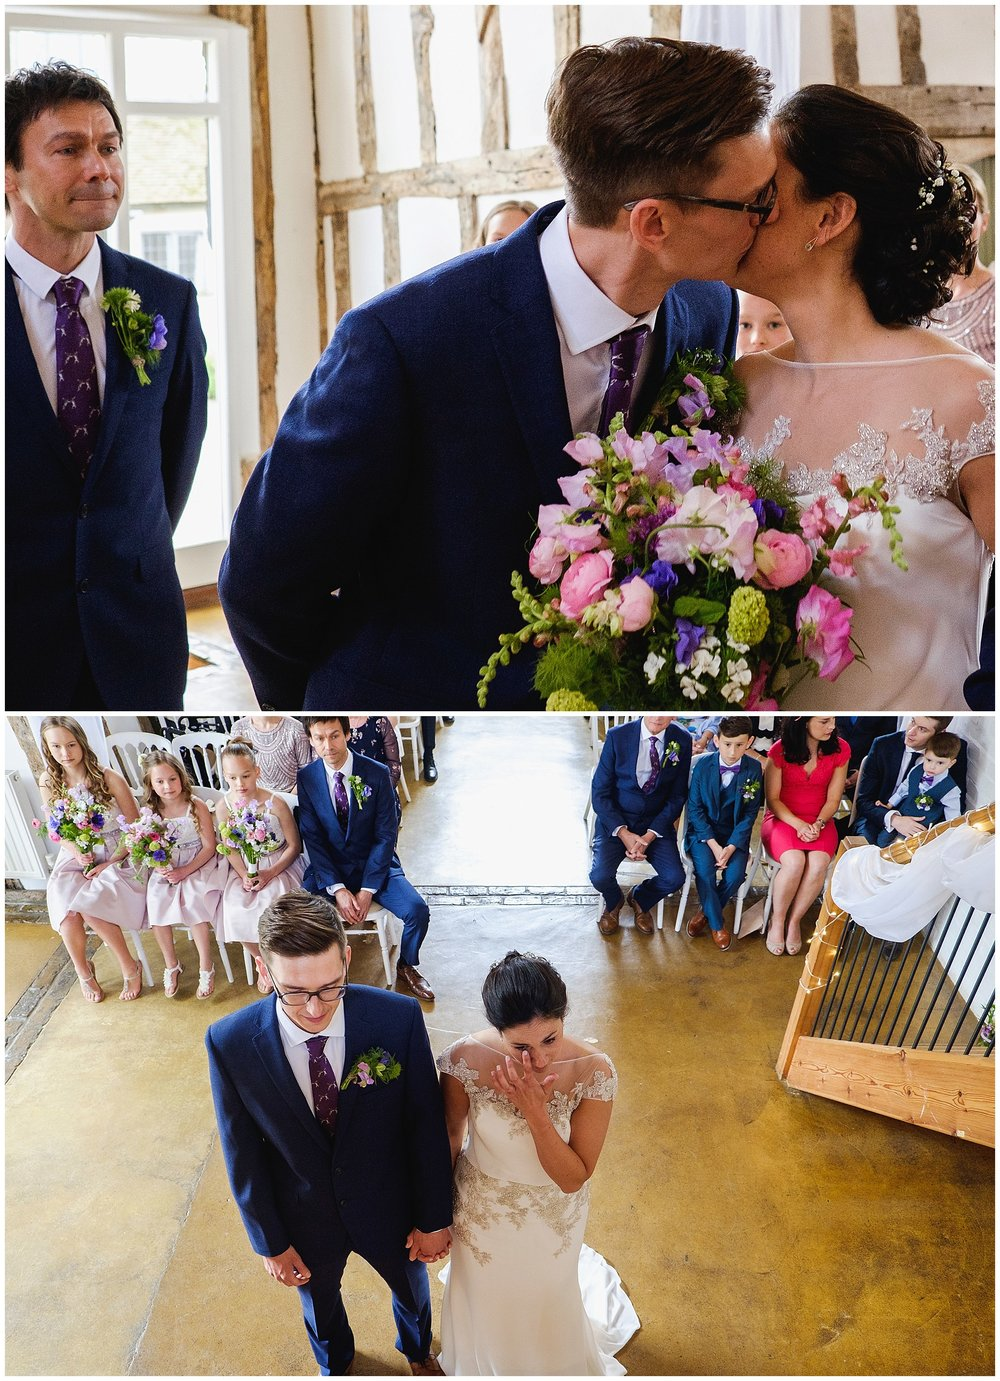 Groom kisses bride as Best man wears